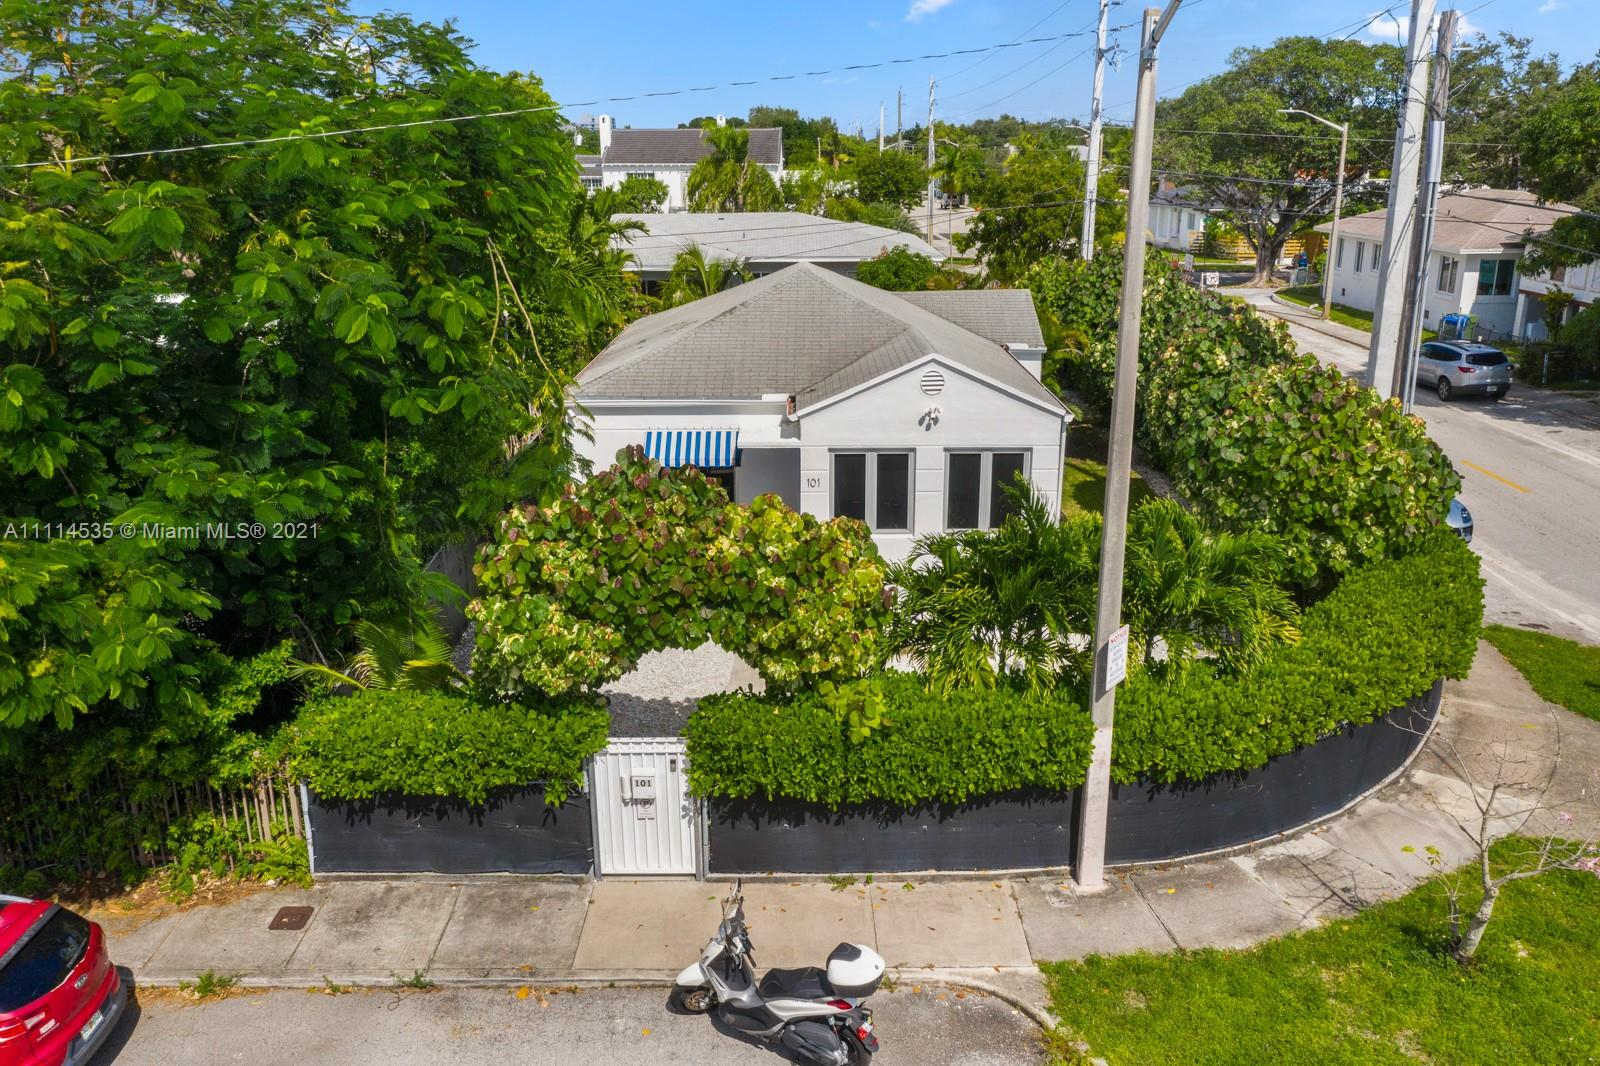 Single Family Home,For Sale,101 NW 47th St, Miami, Florida 33127,Brickell,realty,broker,condos near me